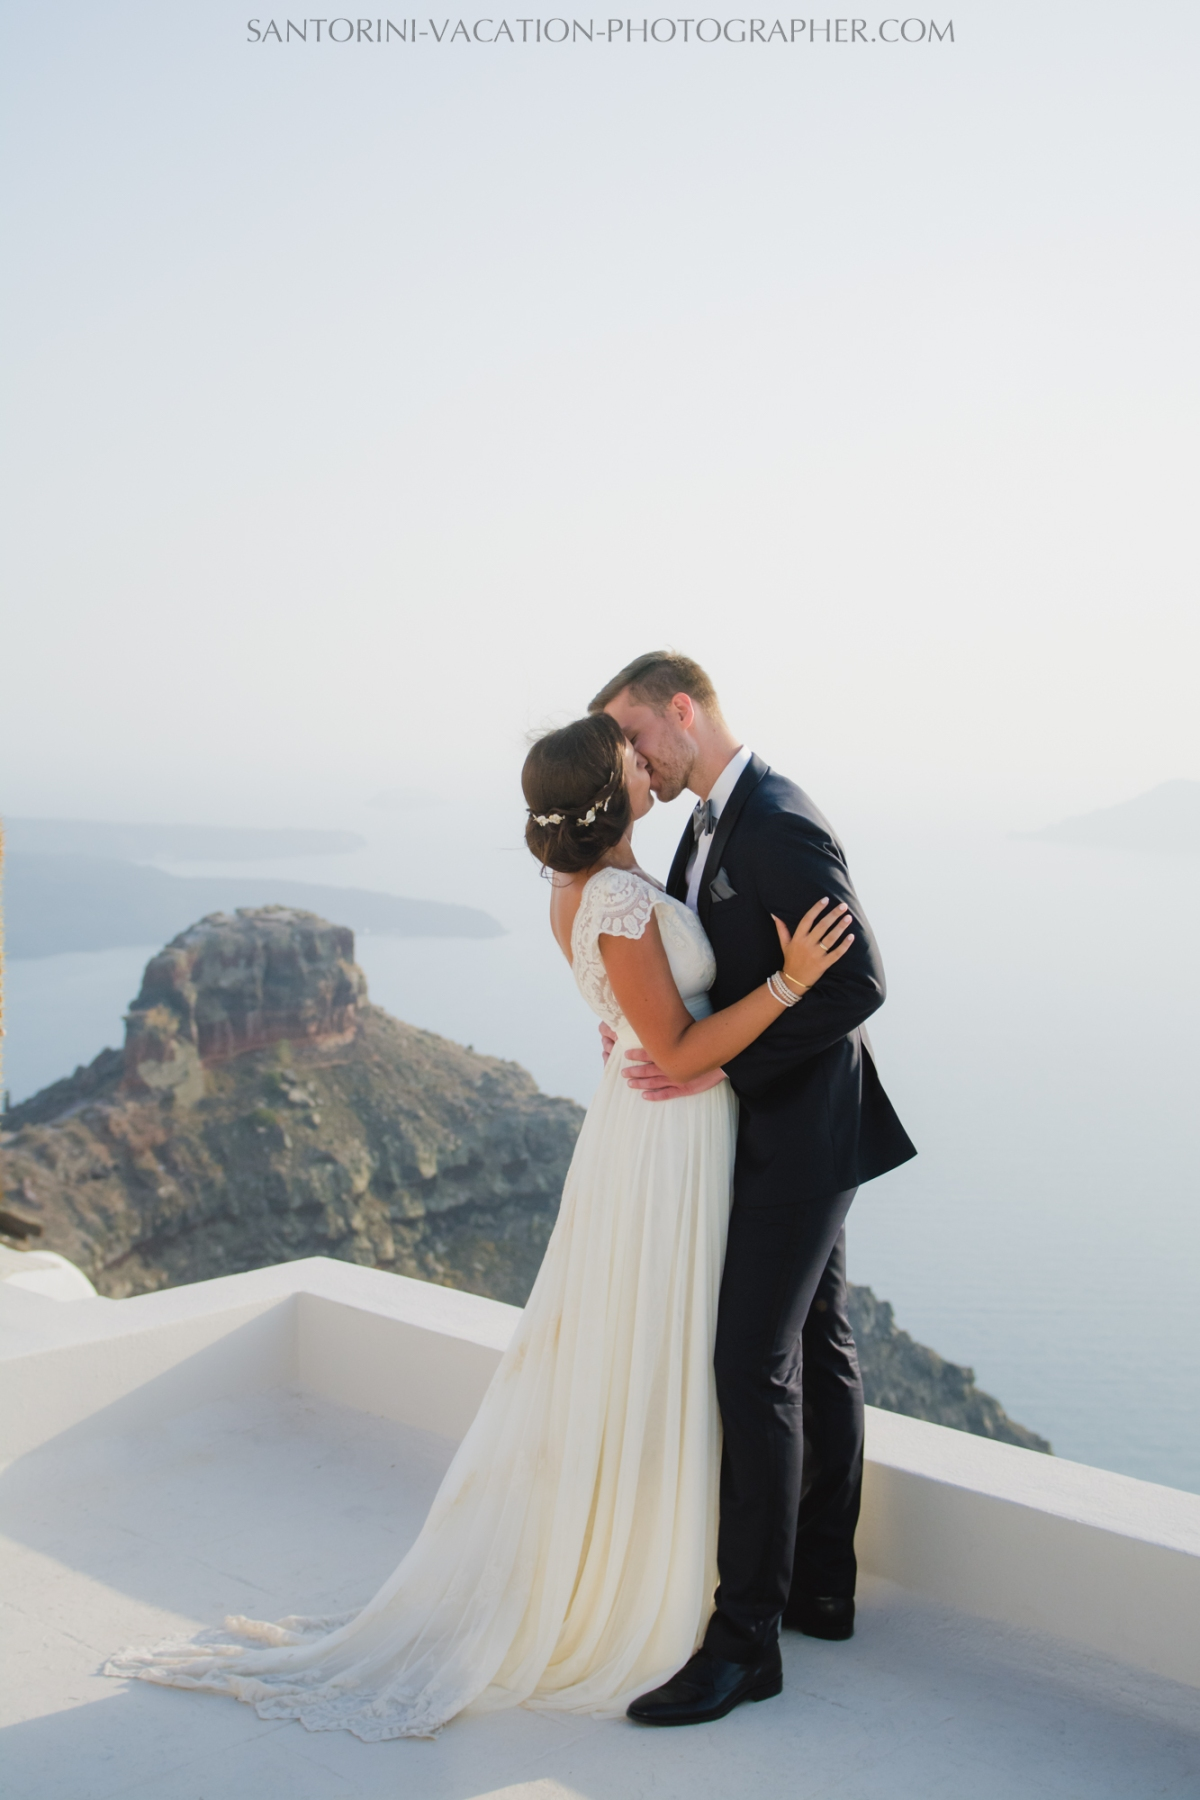 santorini-photographer-couples-photo-session-vacation-honeymoon-4